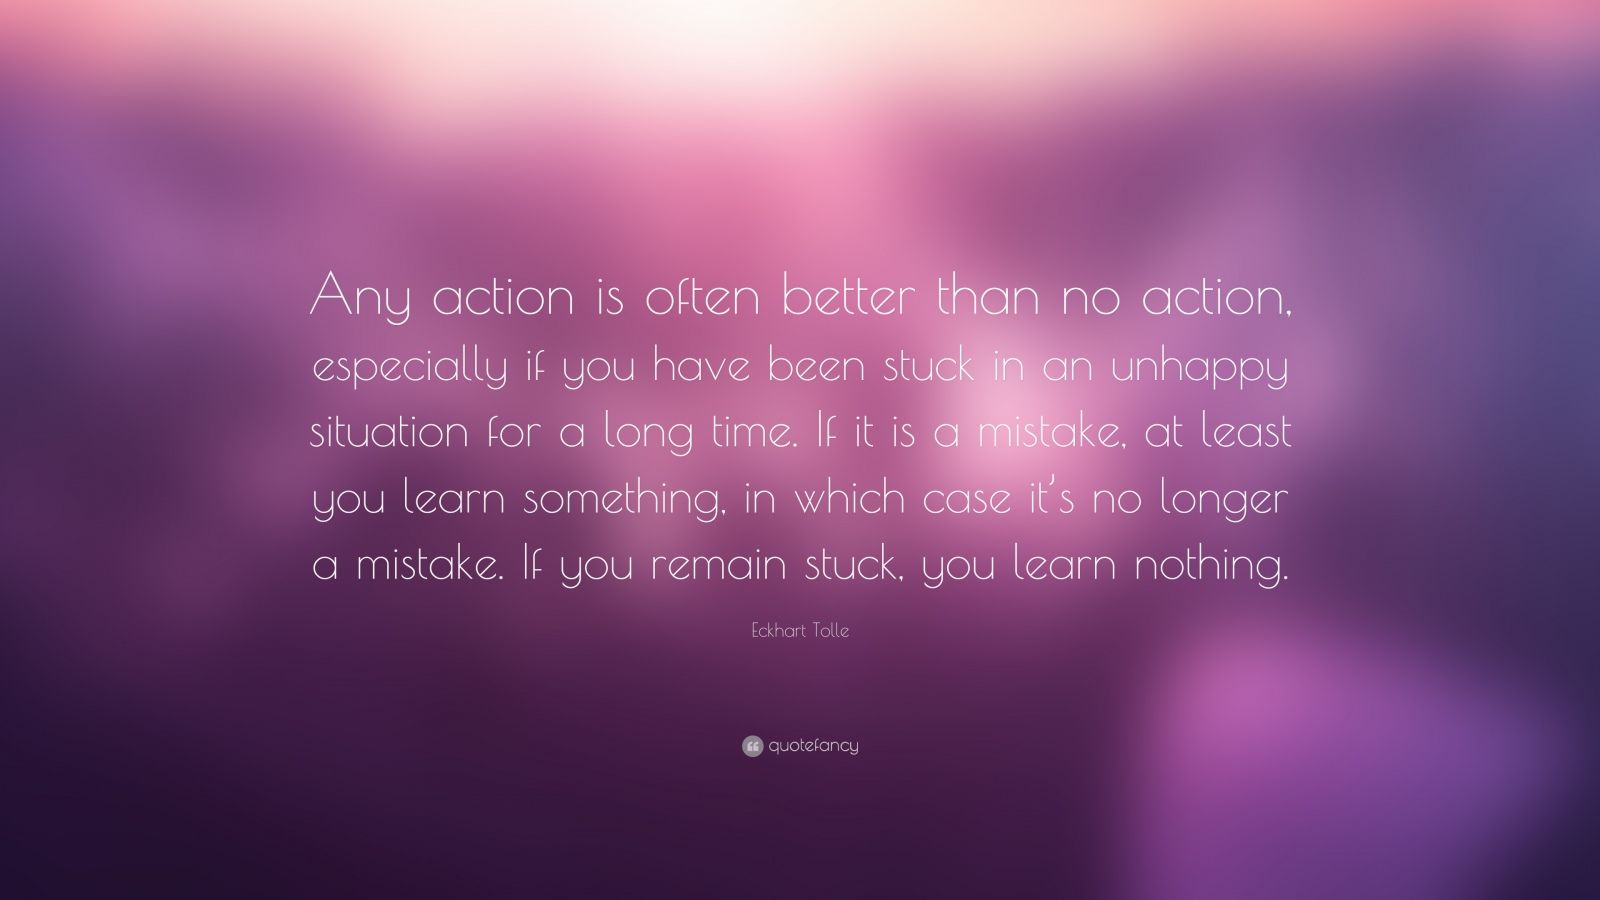 """Eckhart Tolle Quote: """"Any action is often better than no action, especially if you have been stuck in an unhappy situation for a long time. If it is a mistake, at least you learn something, in which case it's no longer a mistake. If you remain stuck, you learn nothing."""""""